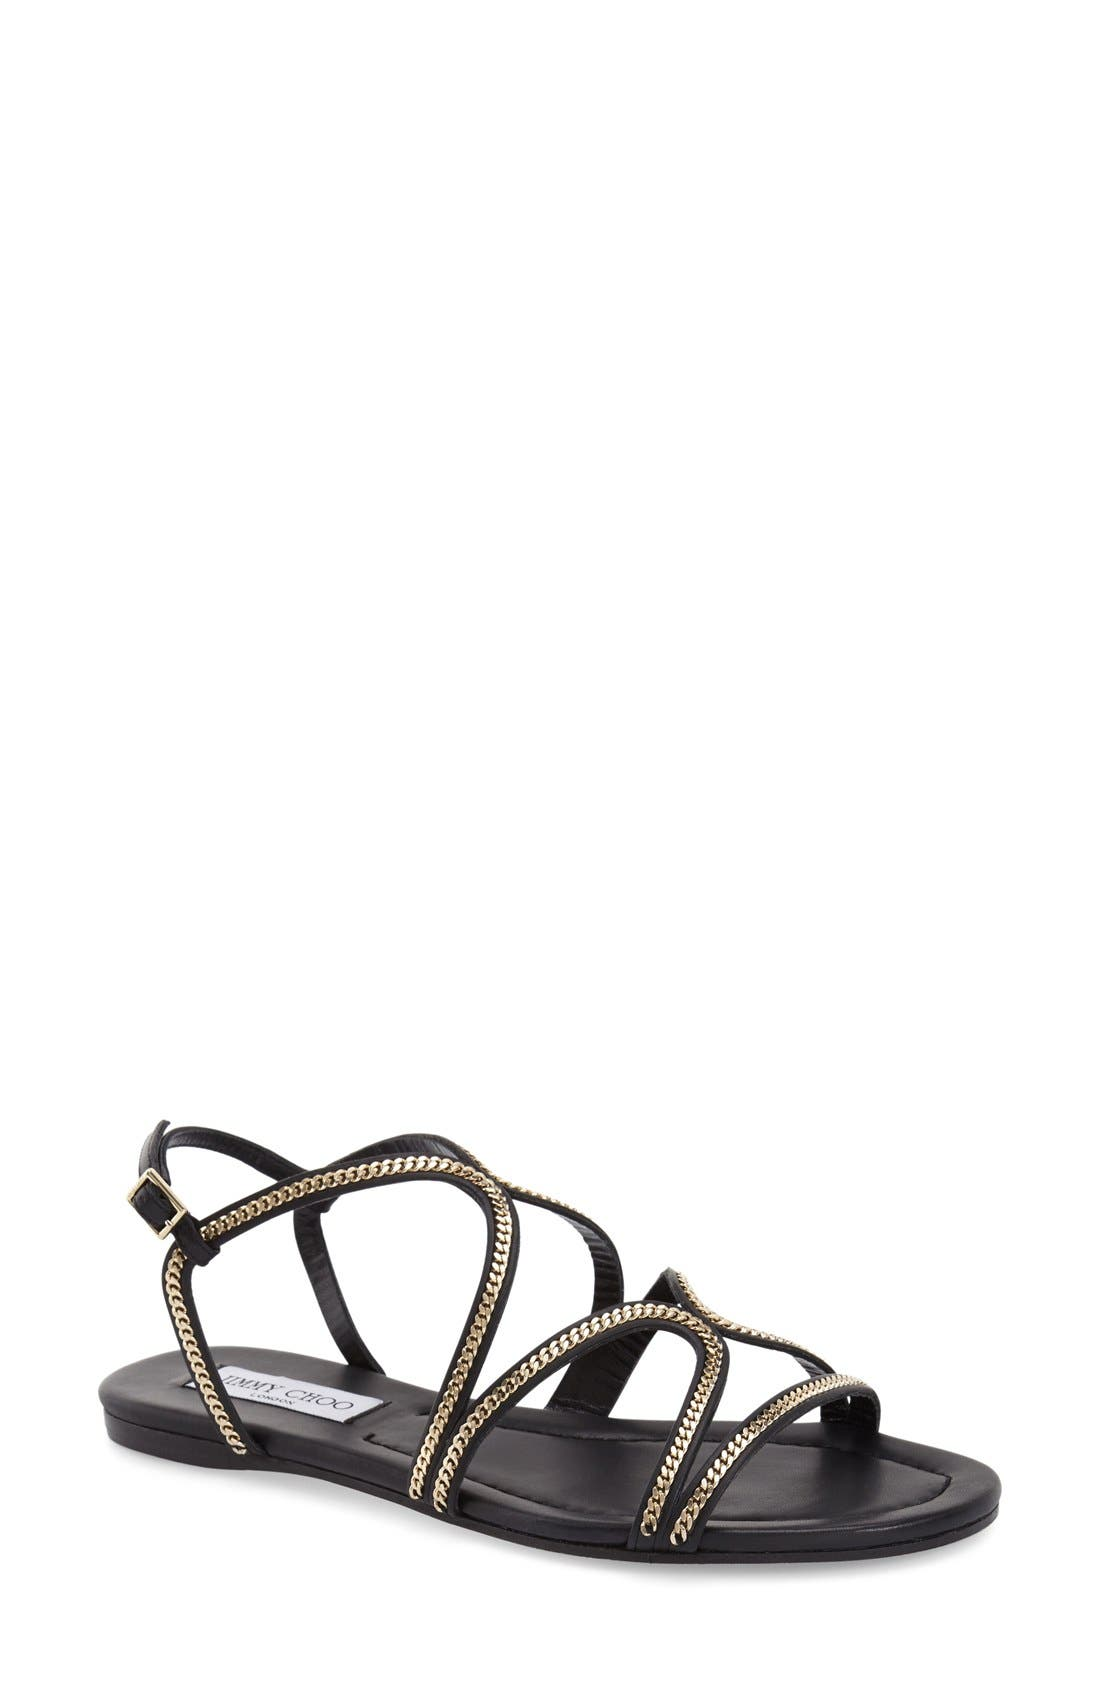 JIMMY CHOO 'Nickel' Sandal